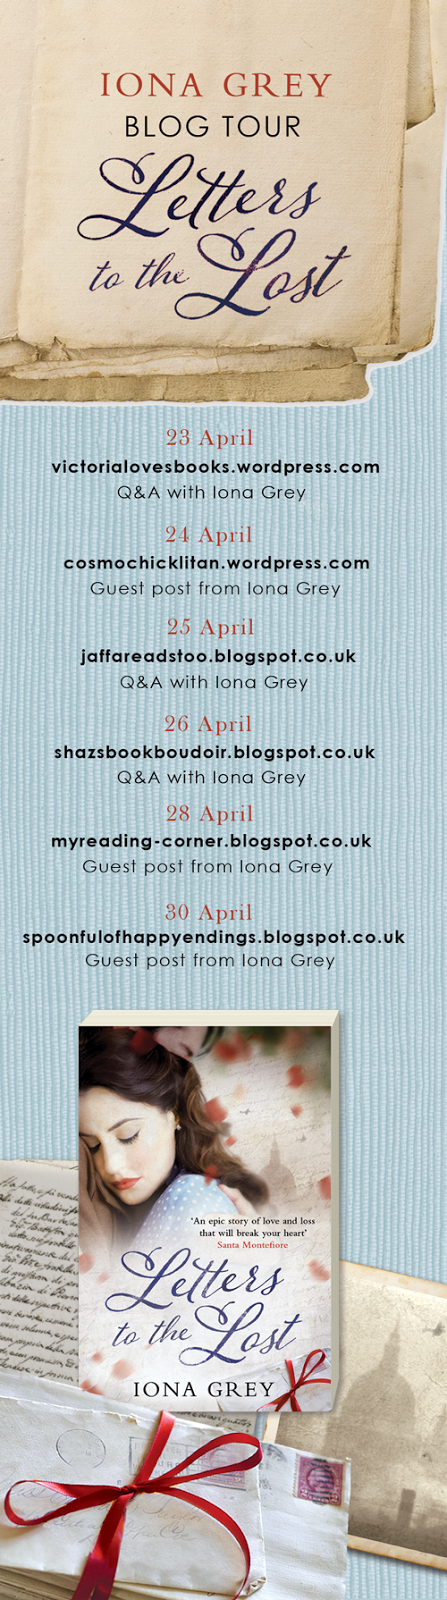 Letters to the Lost Blog Tour - April 2015